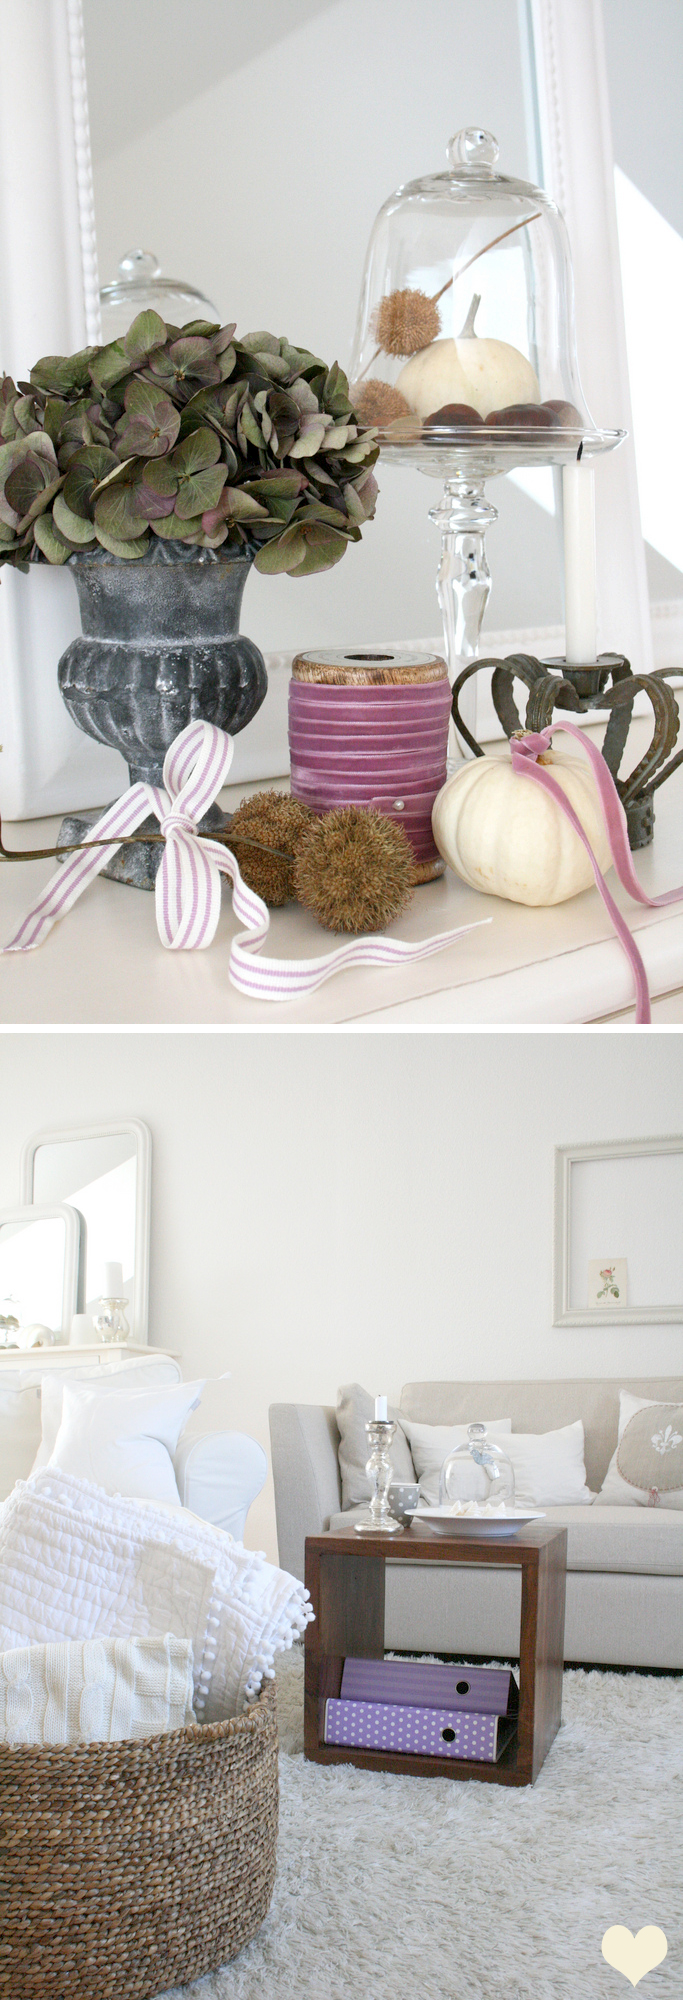 Organize Your Seasonal Home Decorating - All Home Decor It's Home